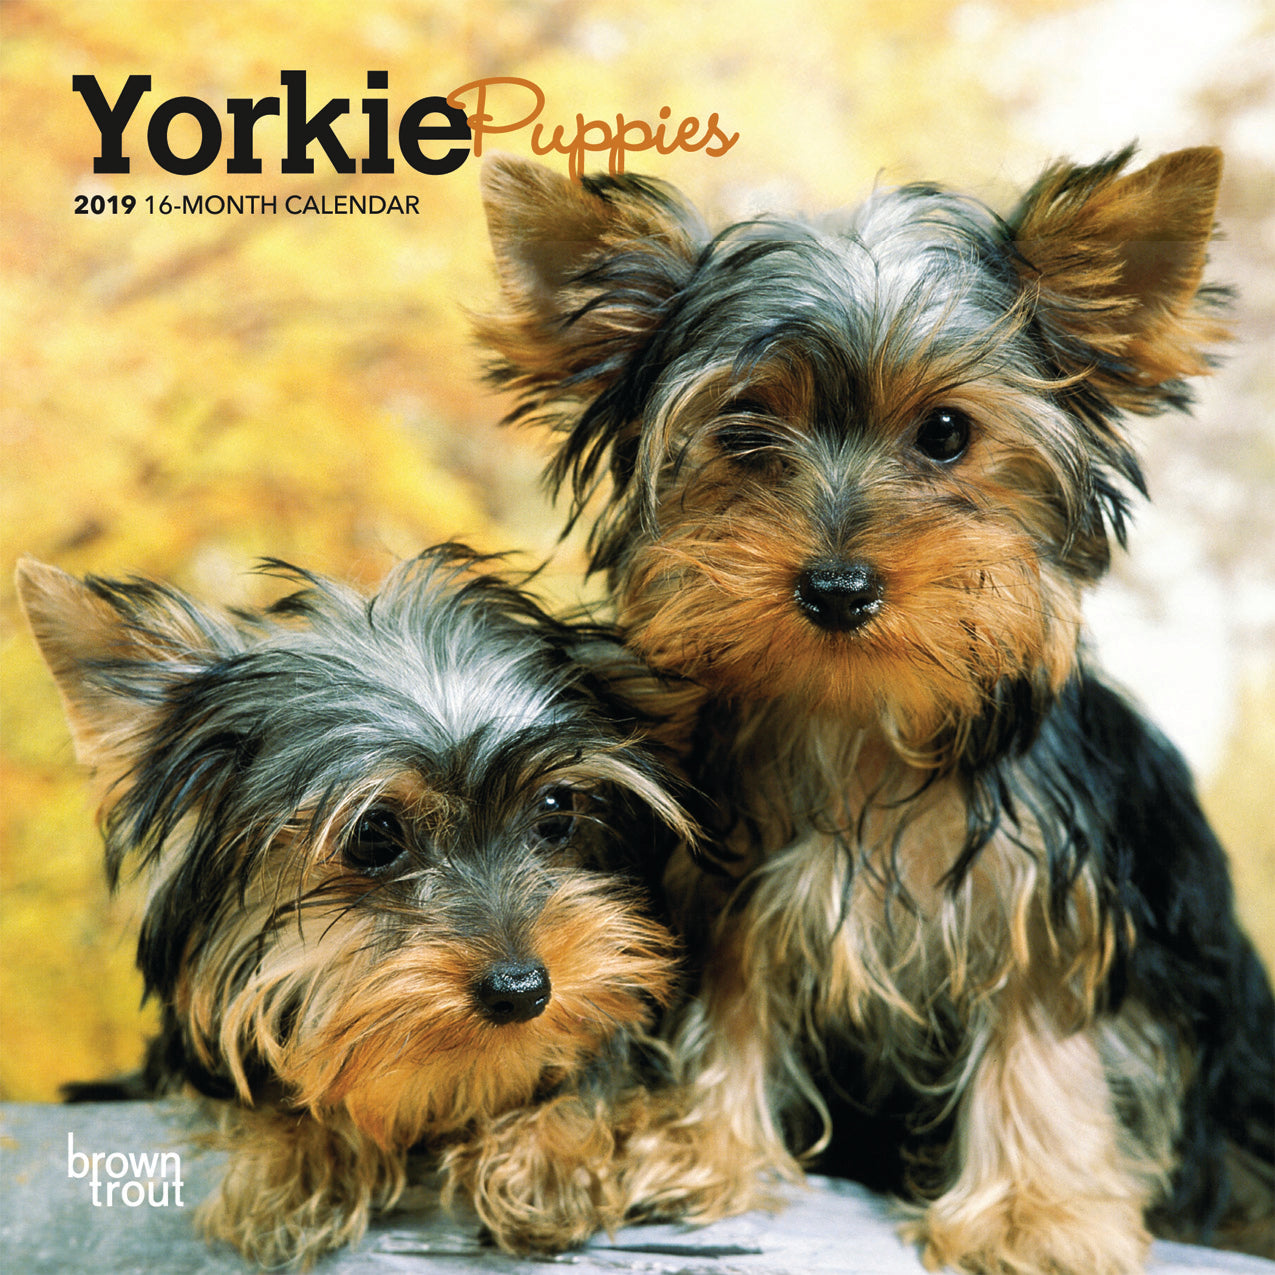 Yorkie Puppies 2019 Mini Wall Calendar